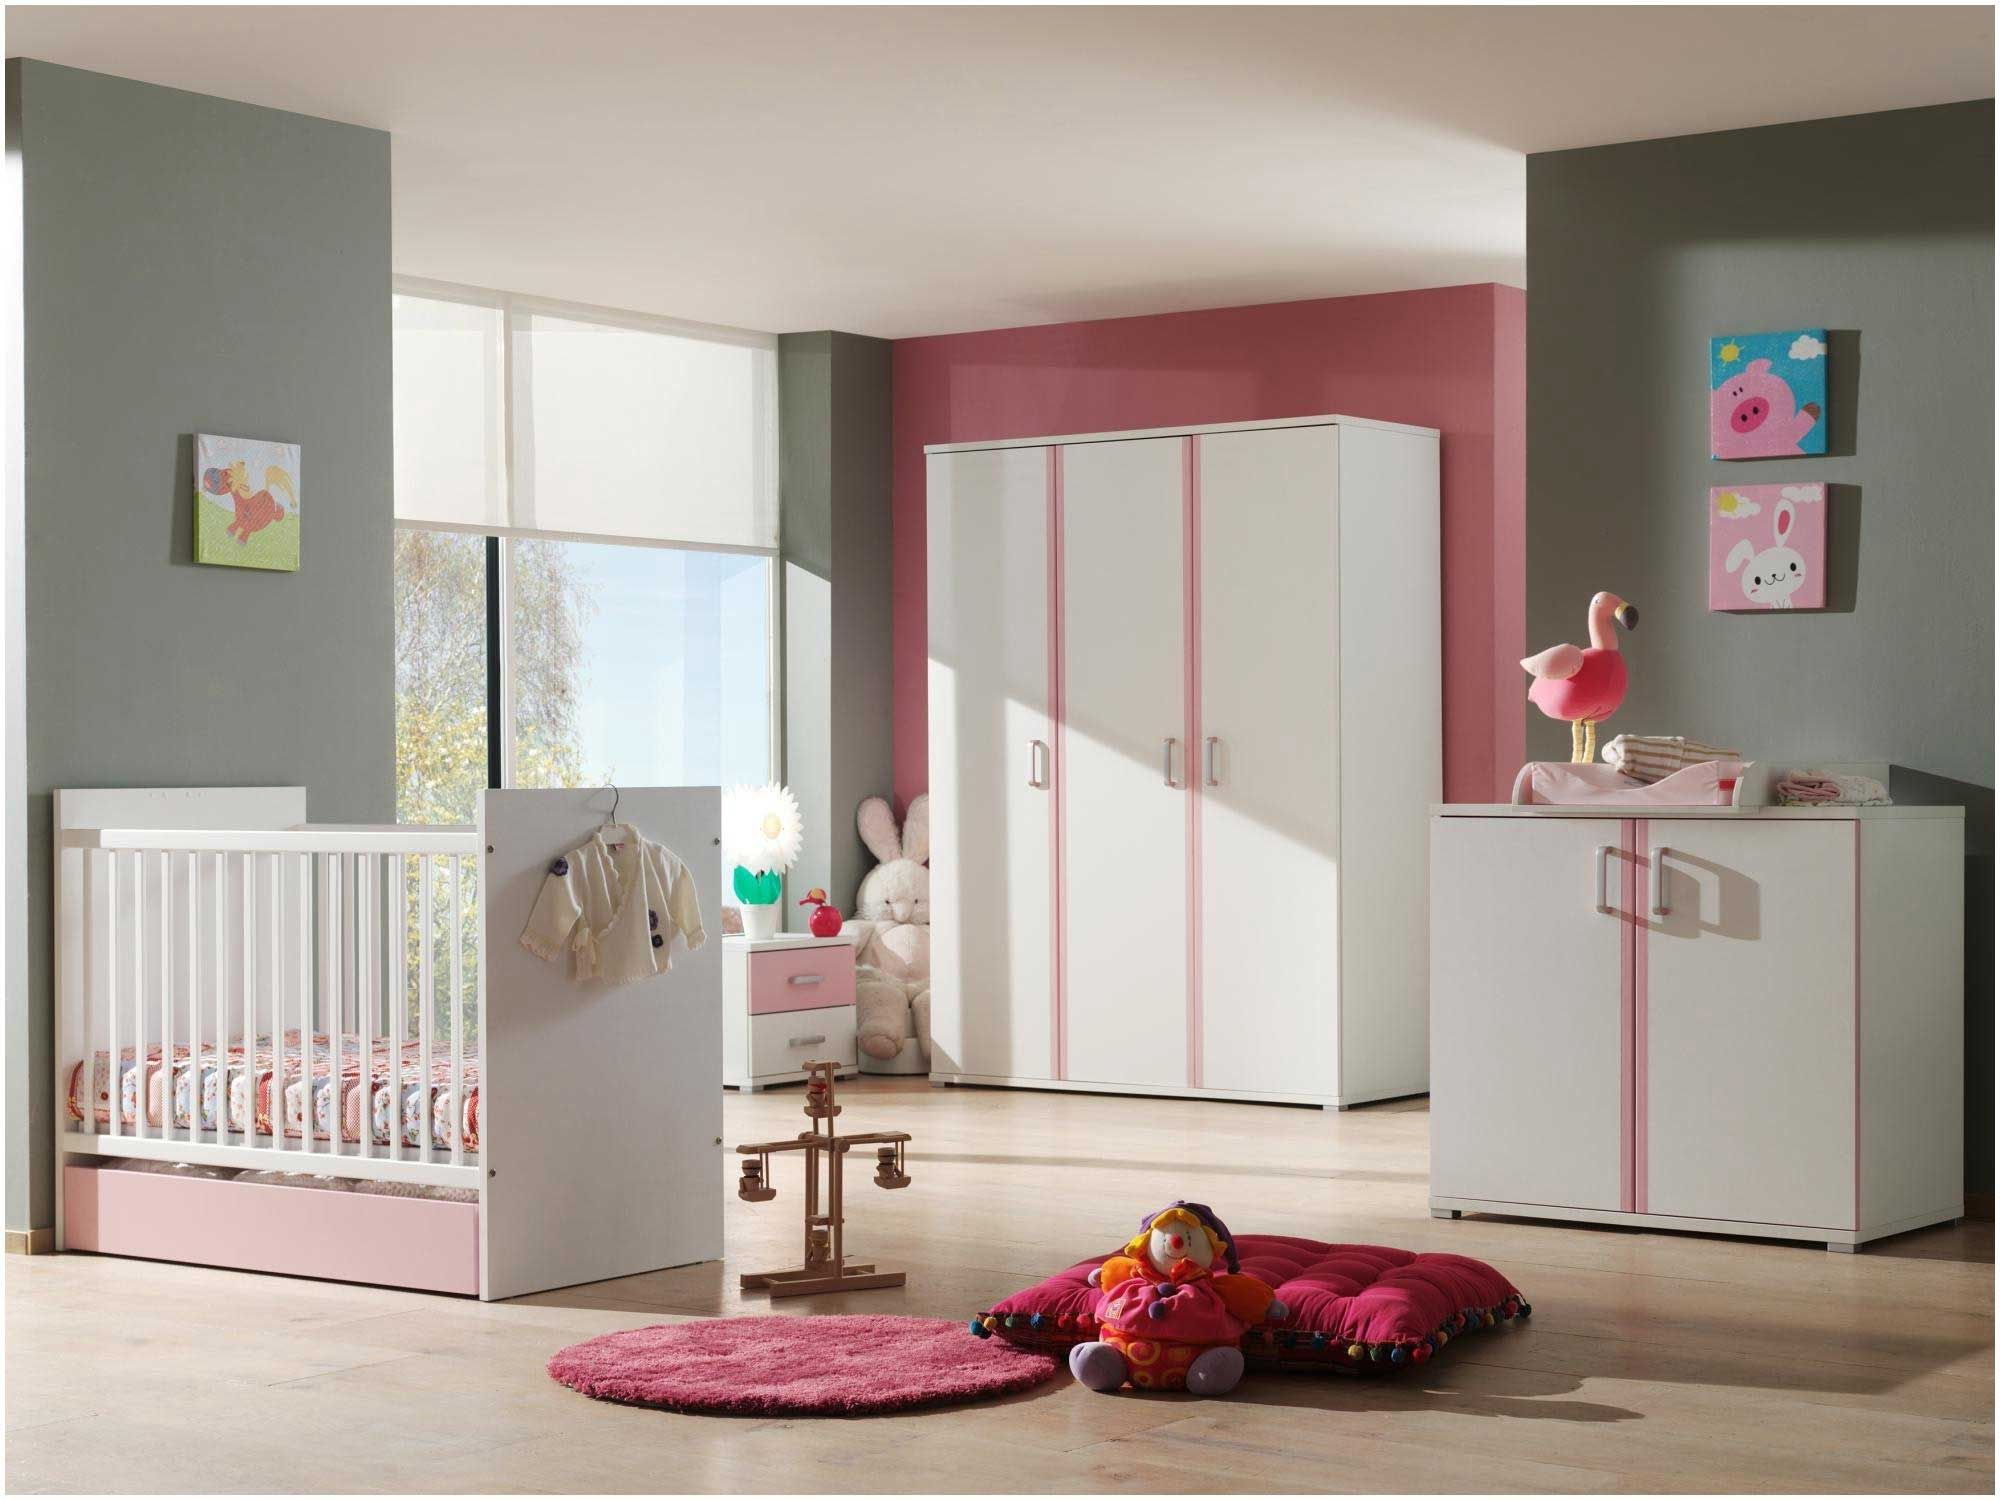 201 Chambre Bebe Complete Pas Chere Download Chambre Bebe Plete Pas Cher Of Chambre Bebe Comp Bebe Toddler Bed Kids Rugs